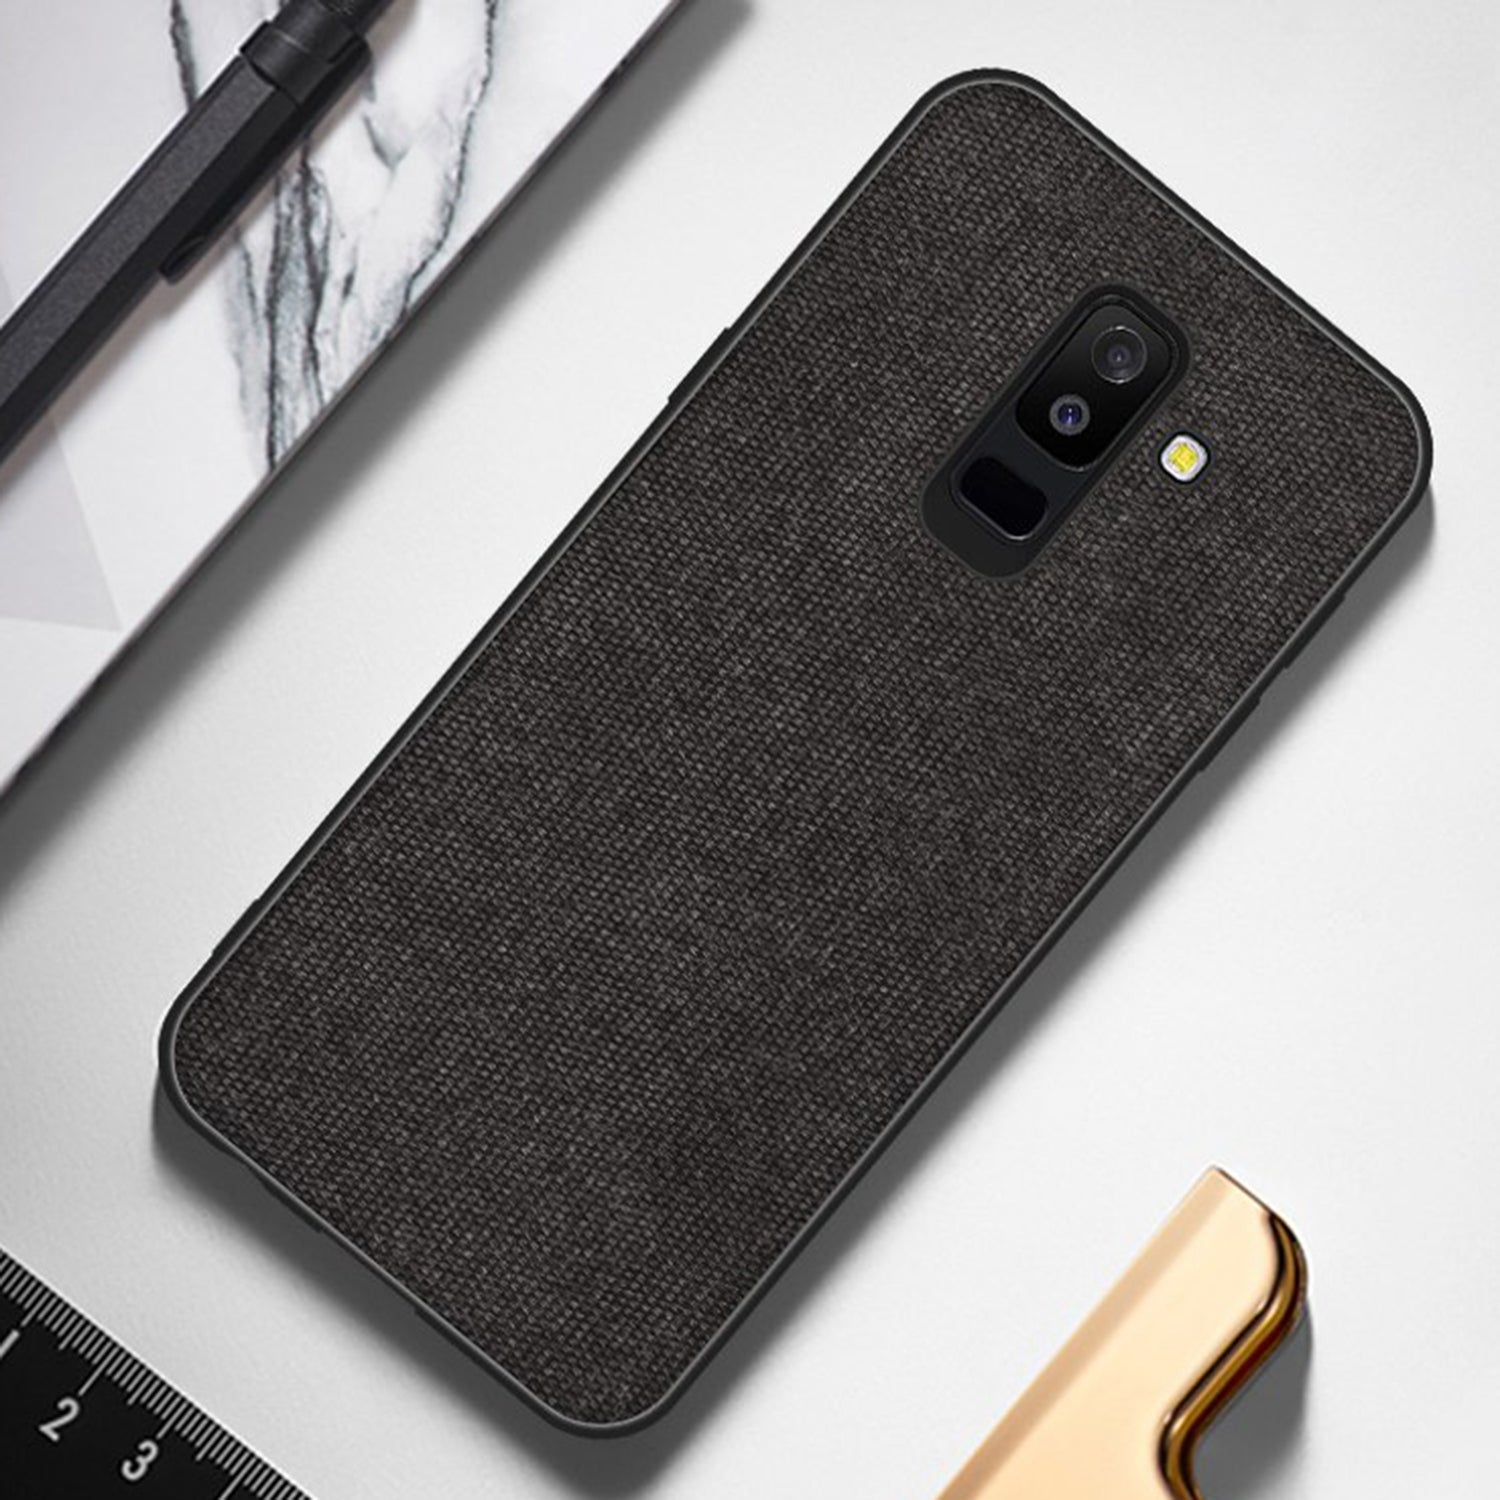 Fabric + Leather Hybrid Premium Protective Cases Cover for Samsung Galaxy A6+ PLUS - Mobizang